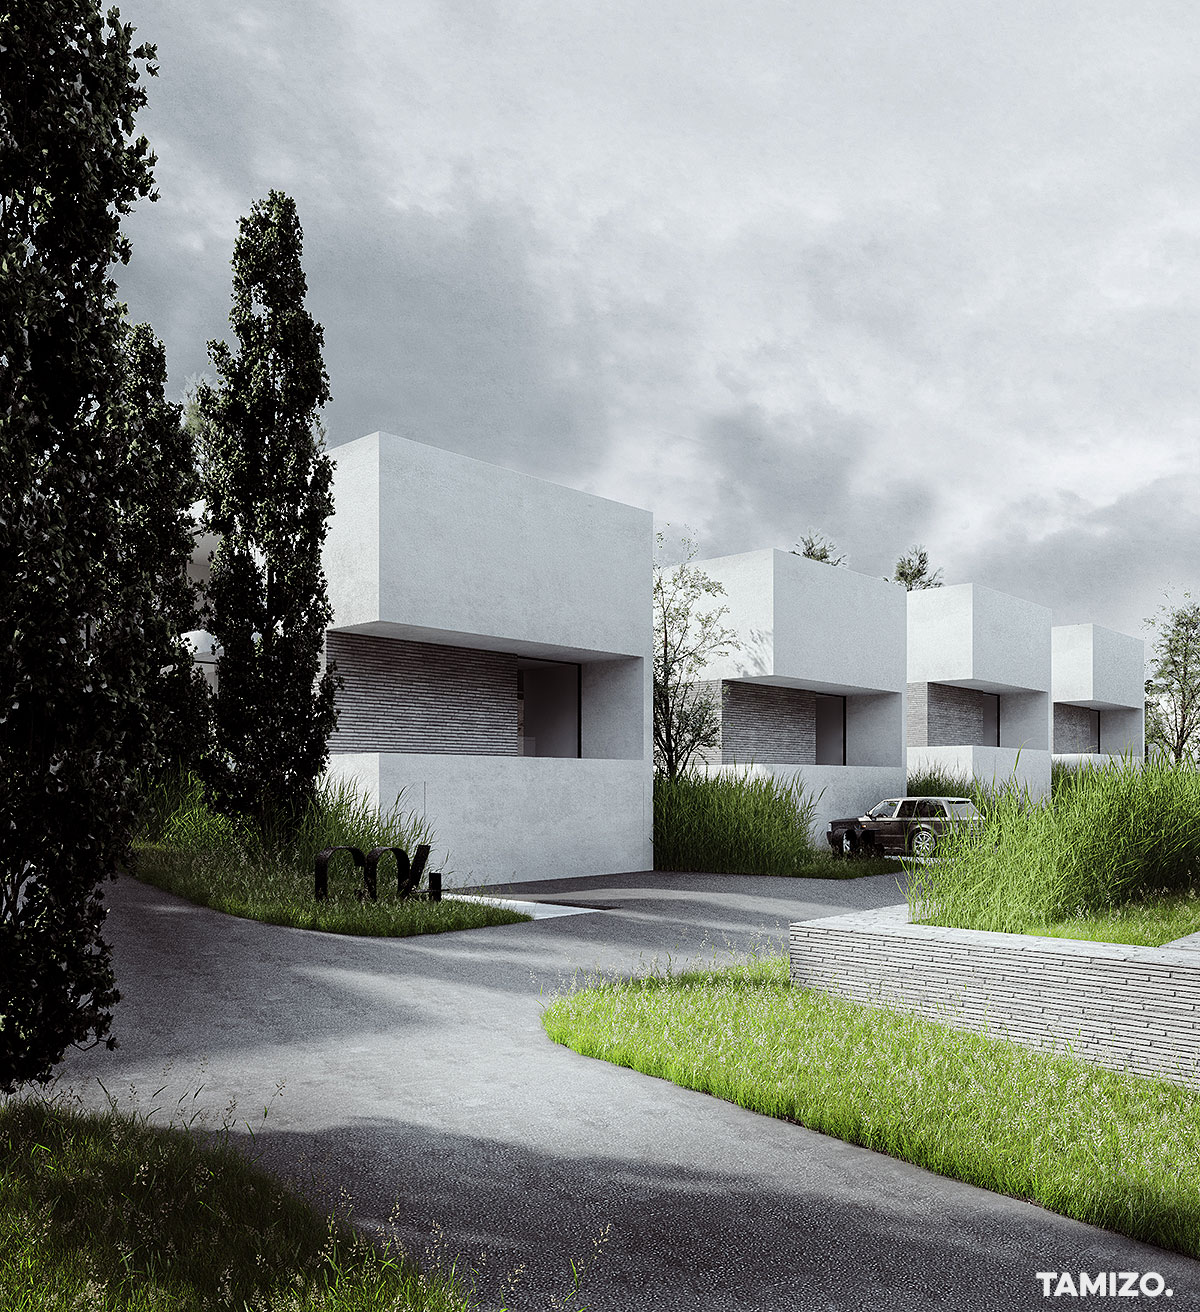 A061_tamizo_architects_competition_tbilisi_georgia_multifamily_houseing_realestate_14